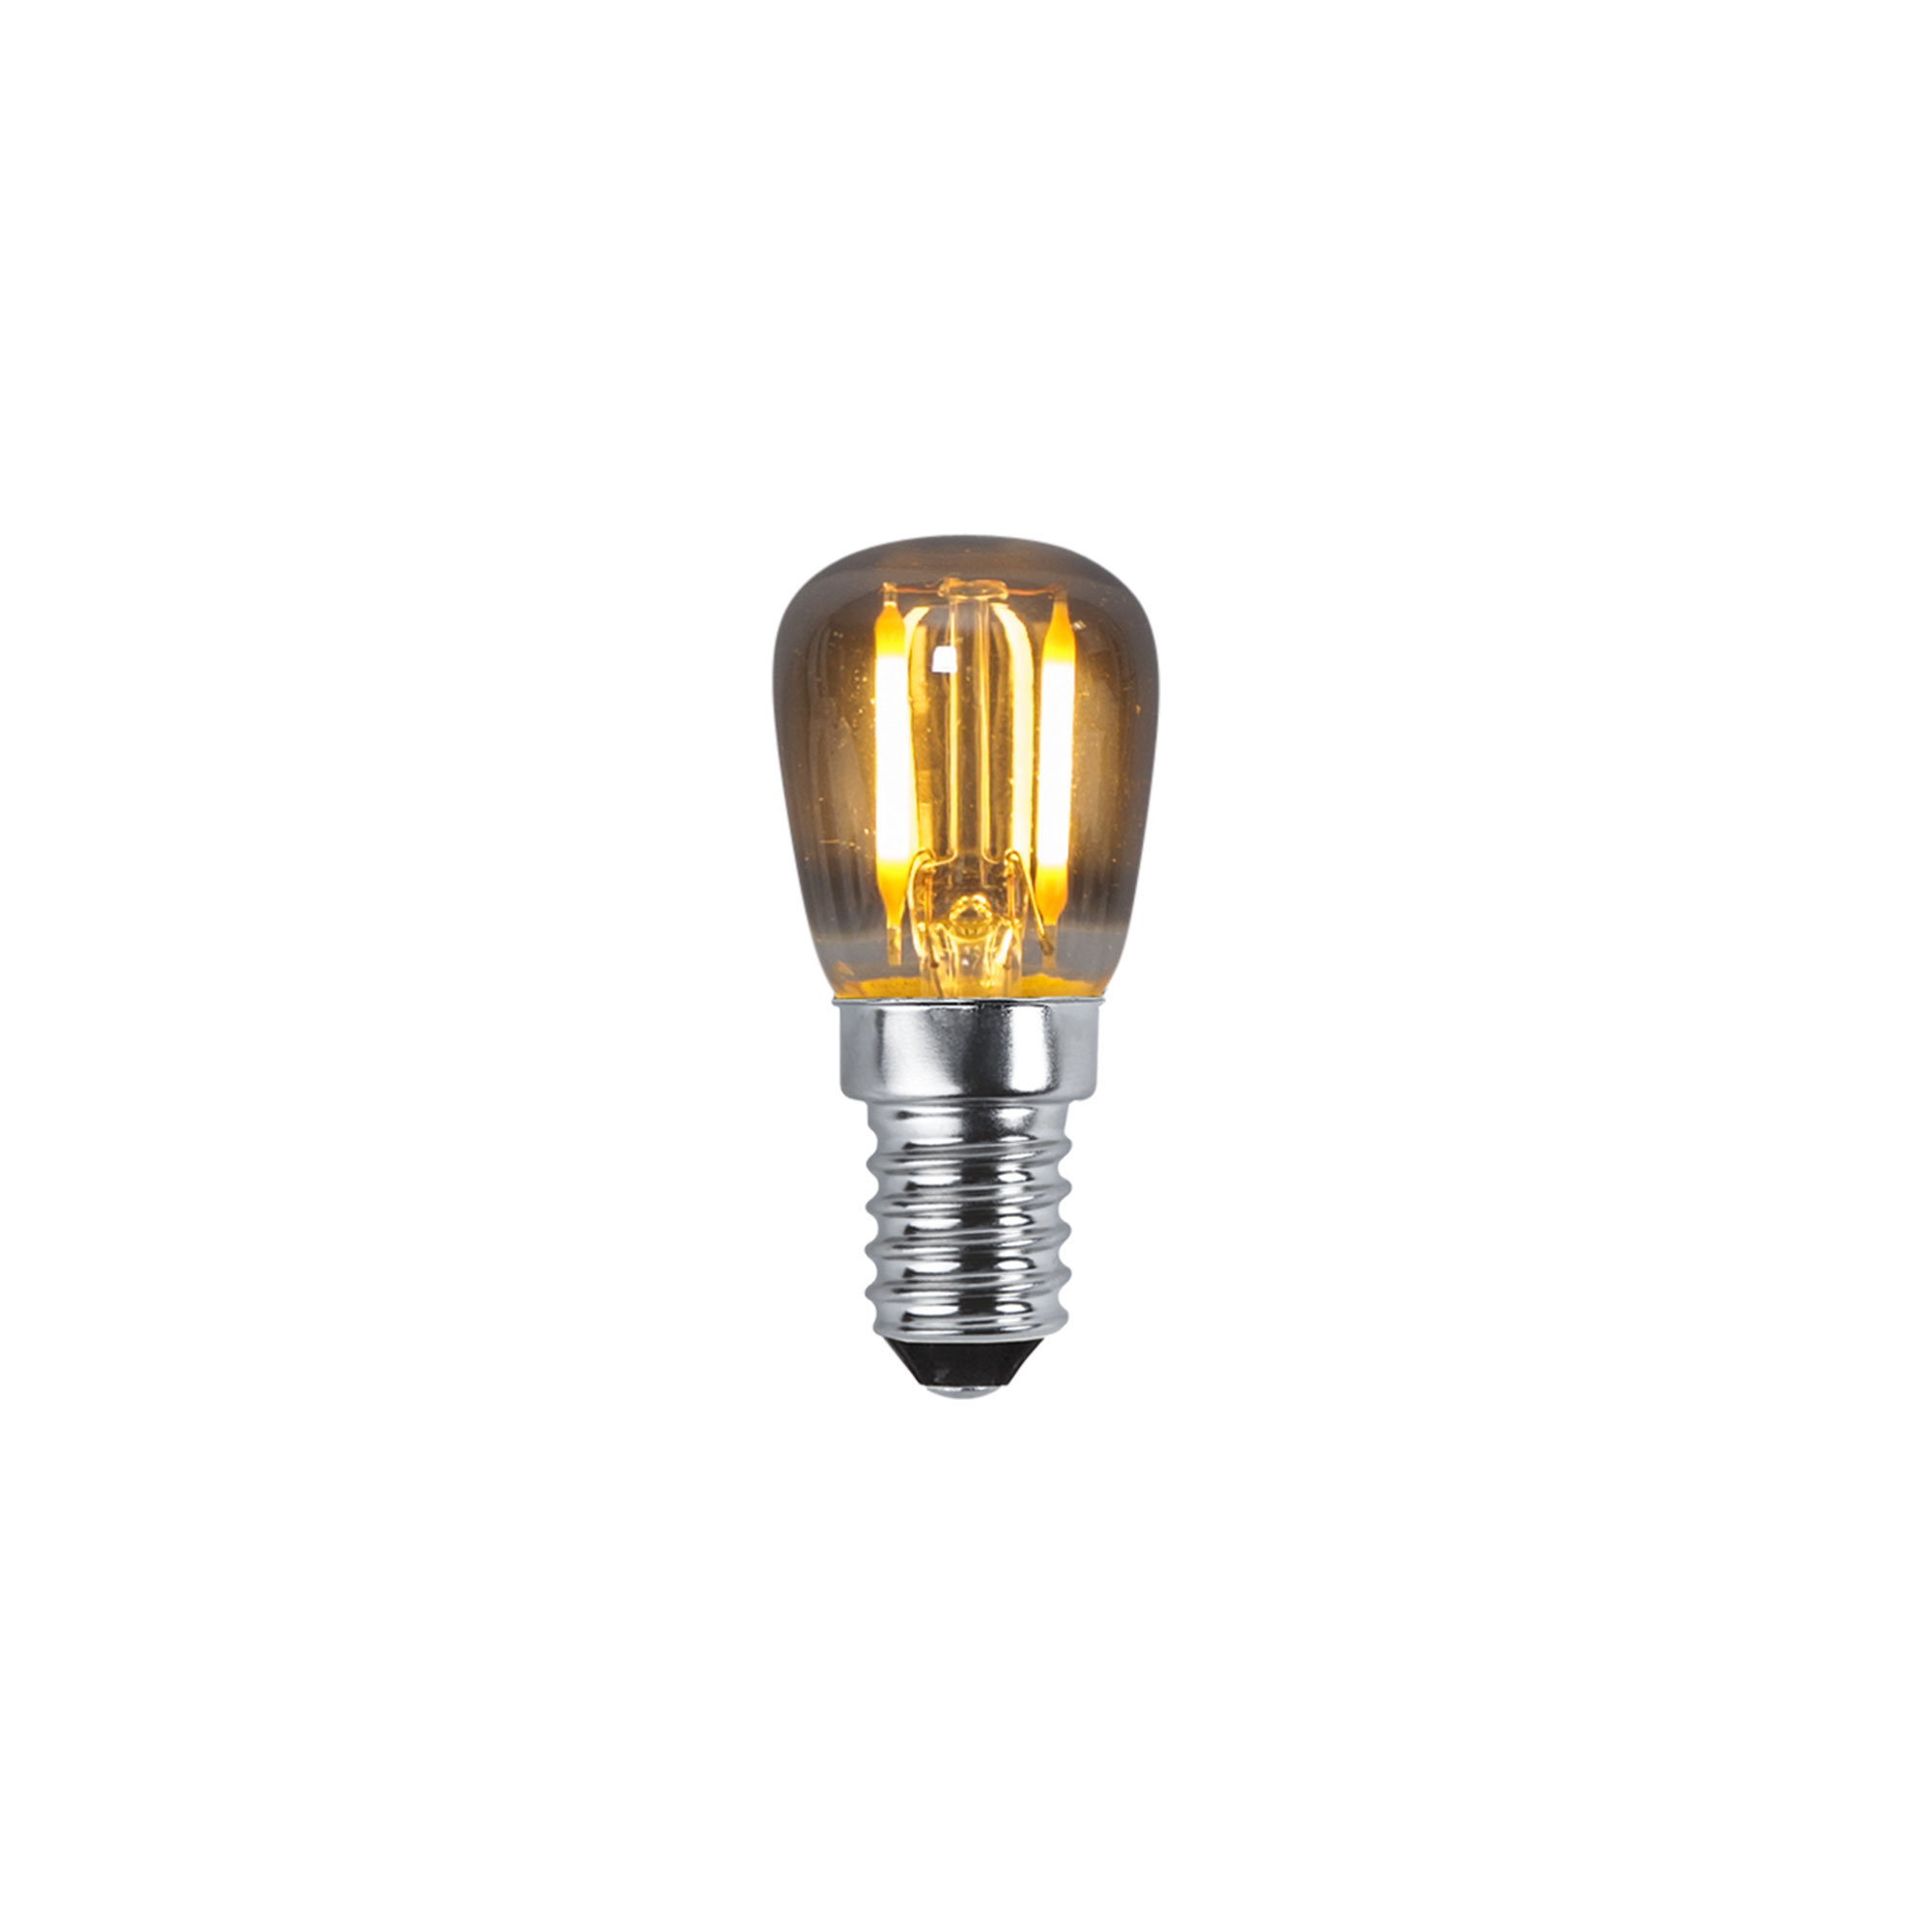 Köp LED lampa E14 ST26 Decoled Amber från Star